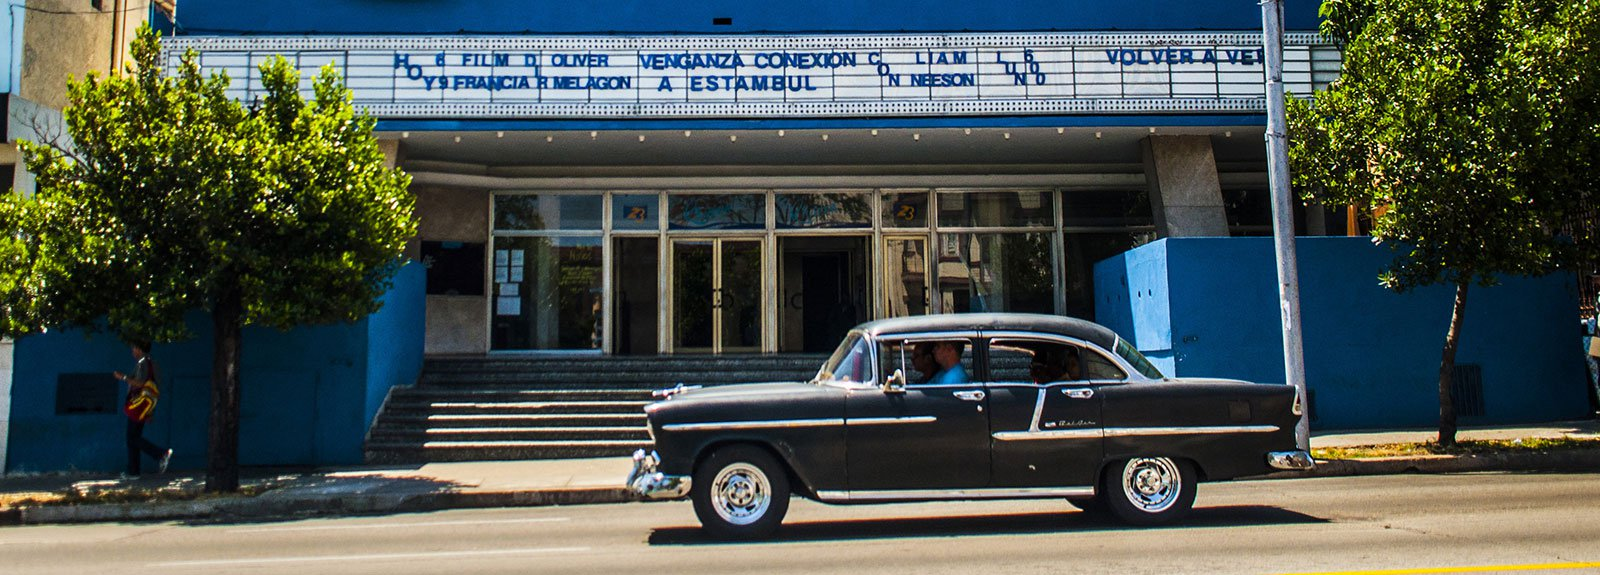 Riviera cinema, black old car passing by the street